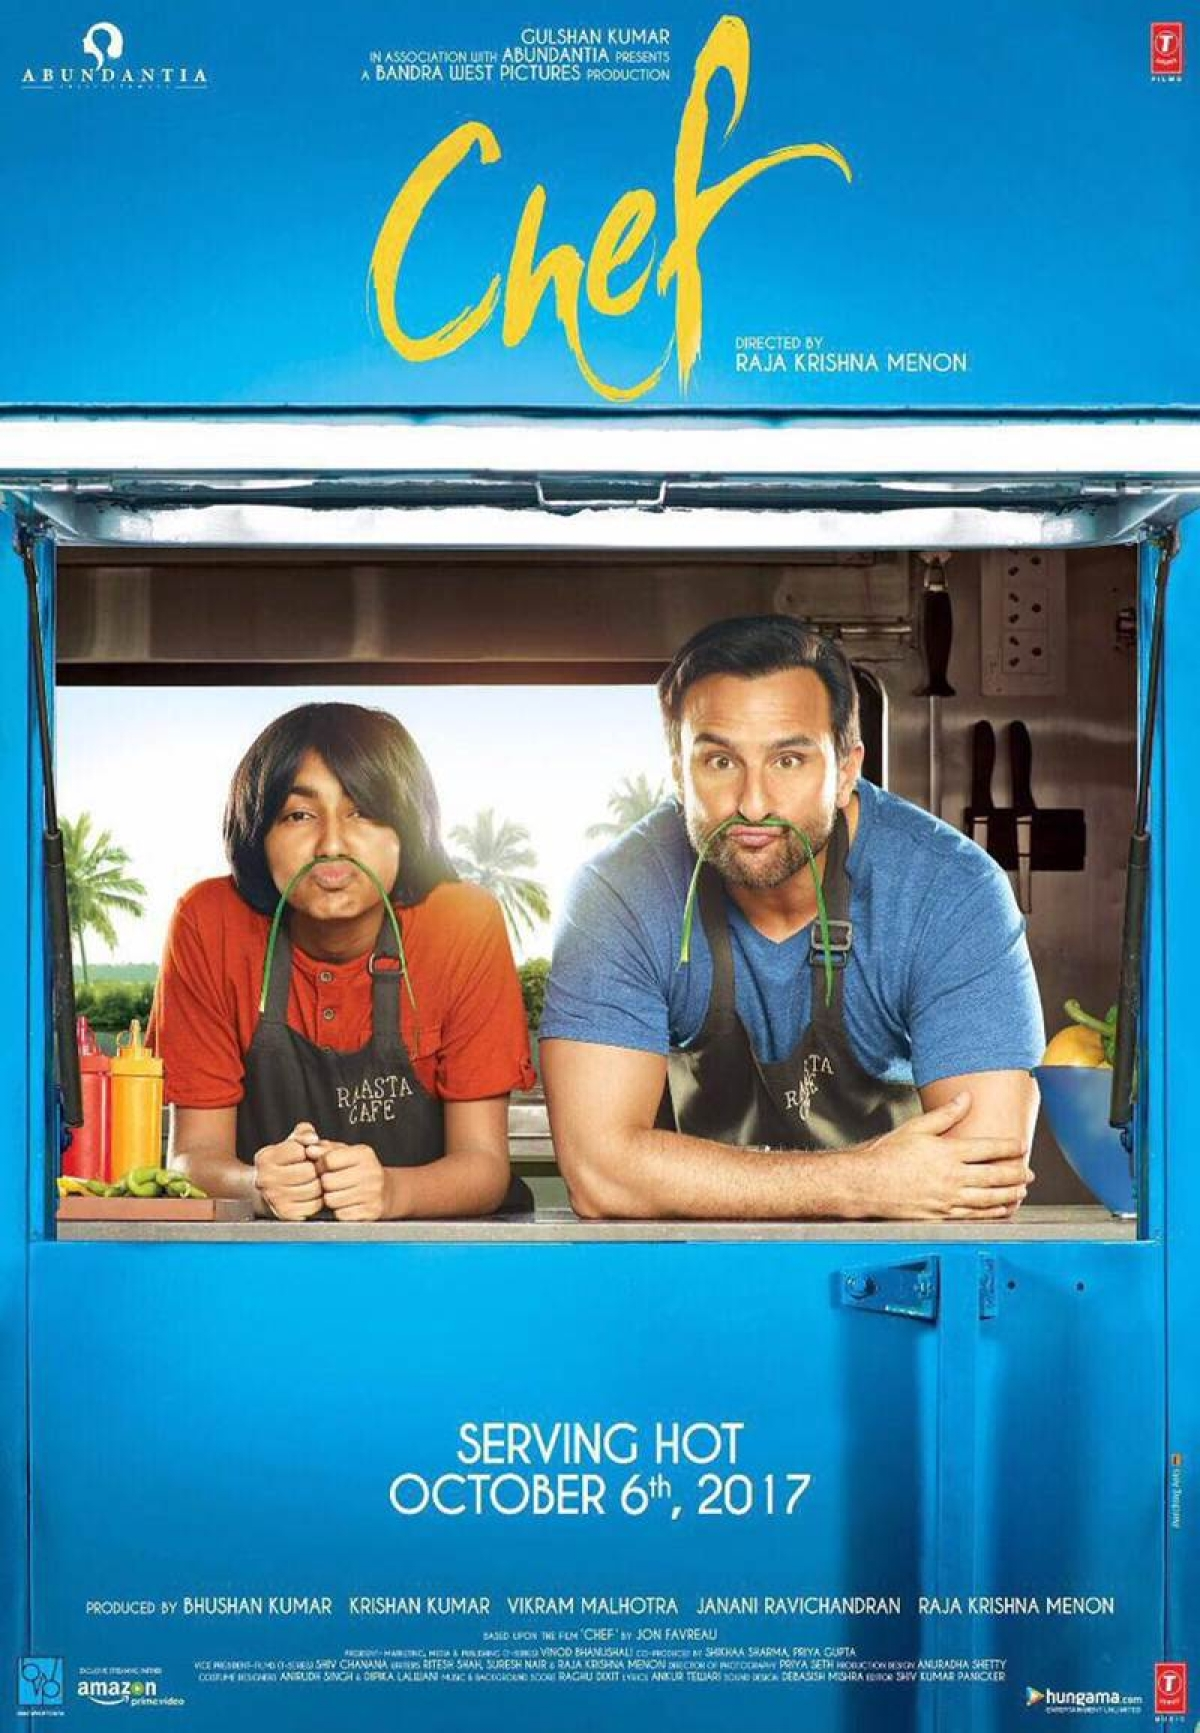 First look of Saif Ali Khan's Chef is out. Take a look